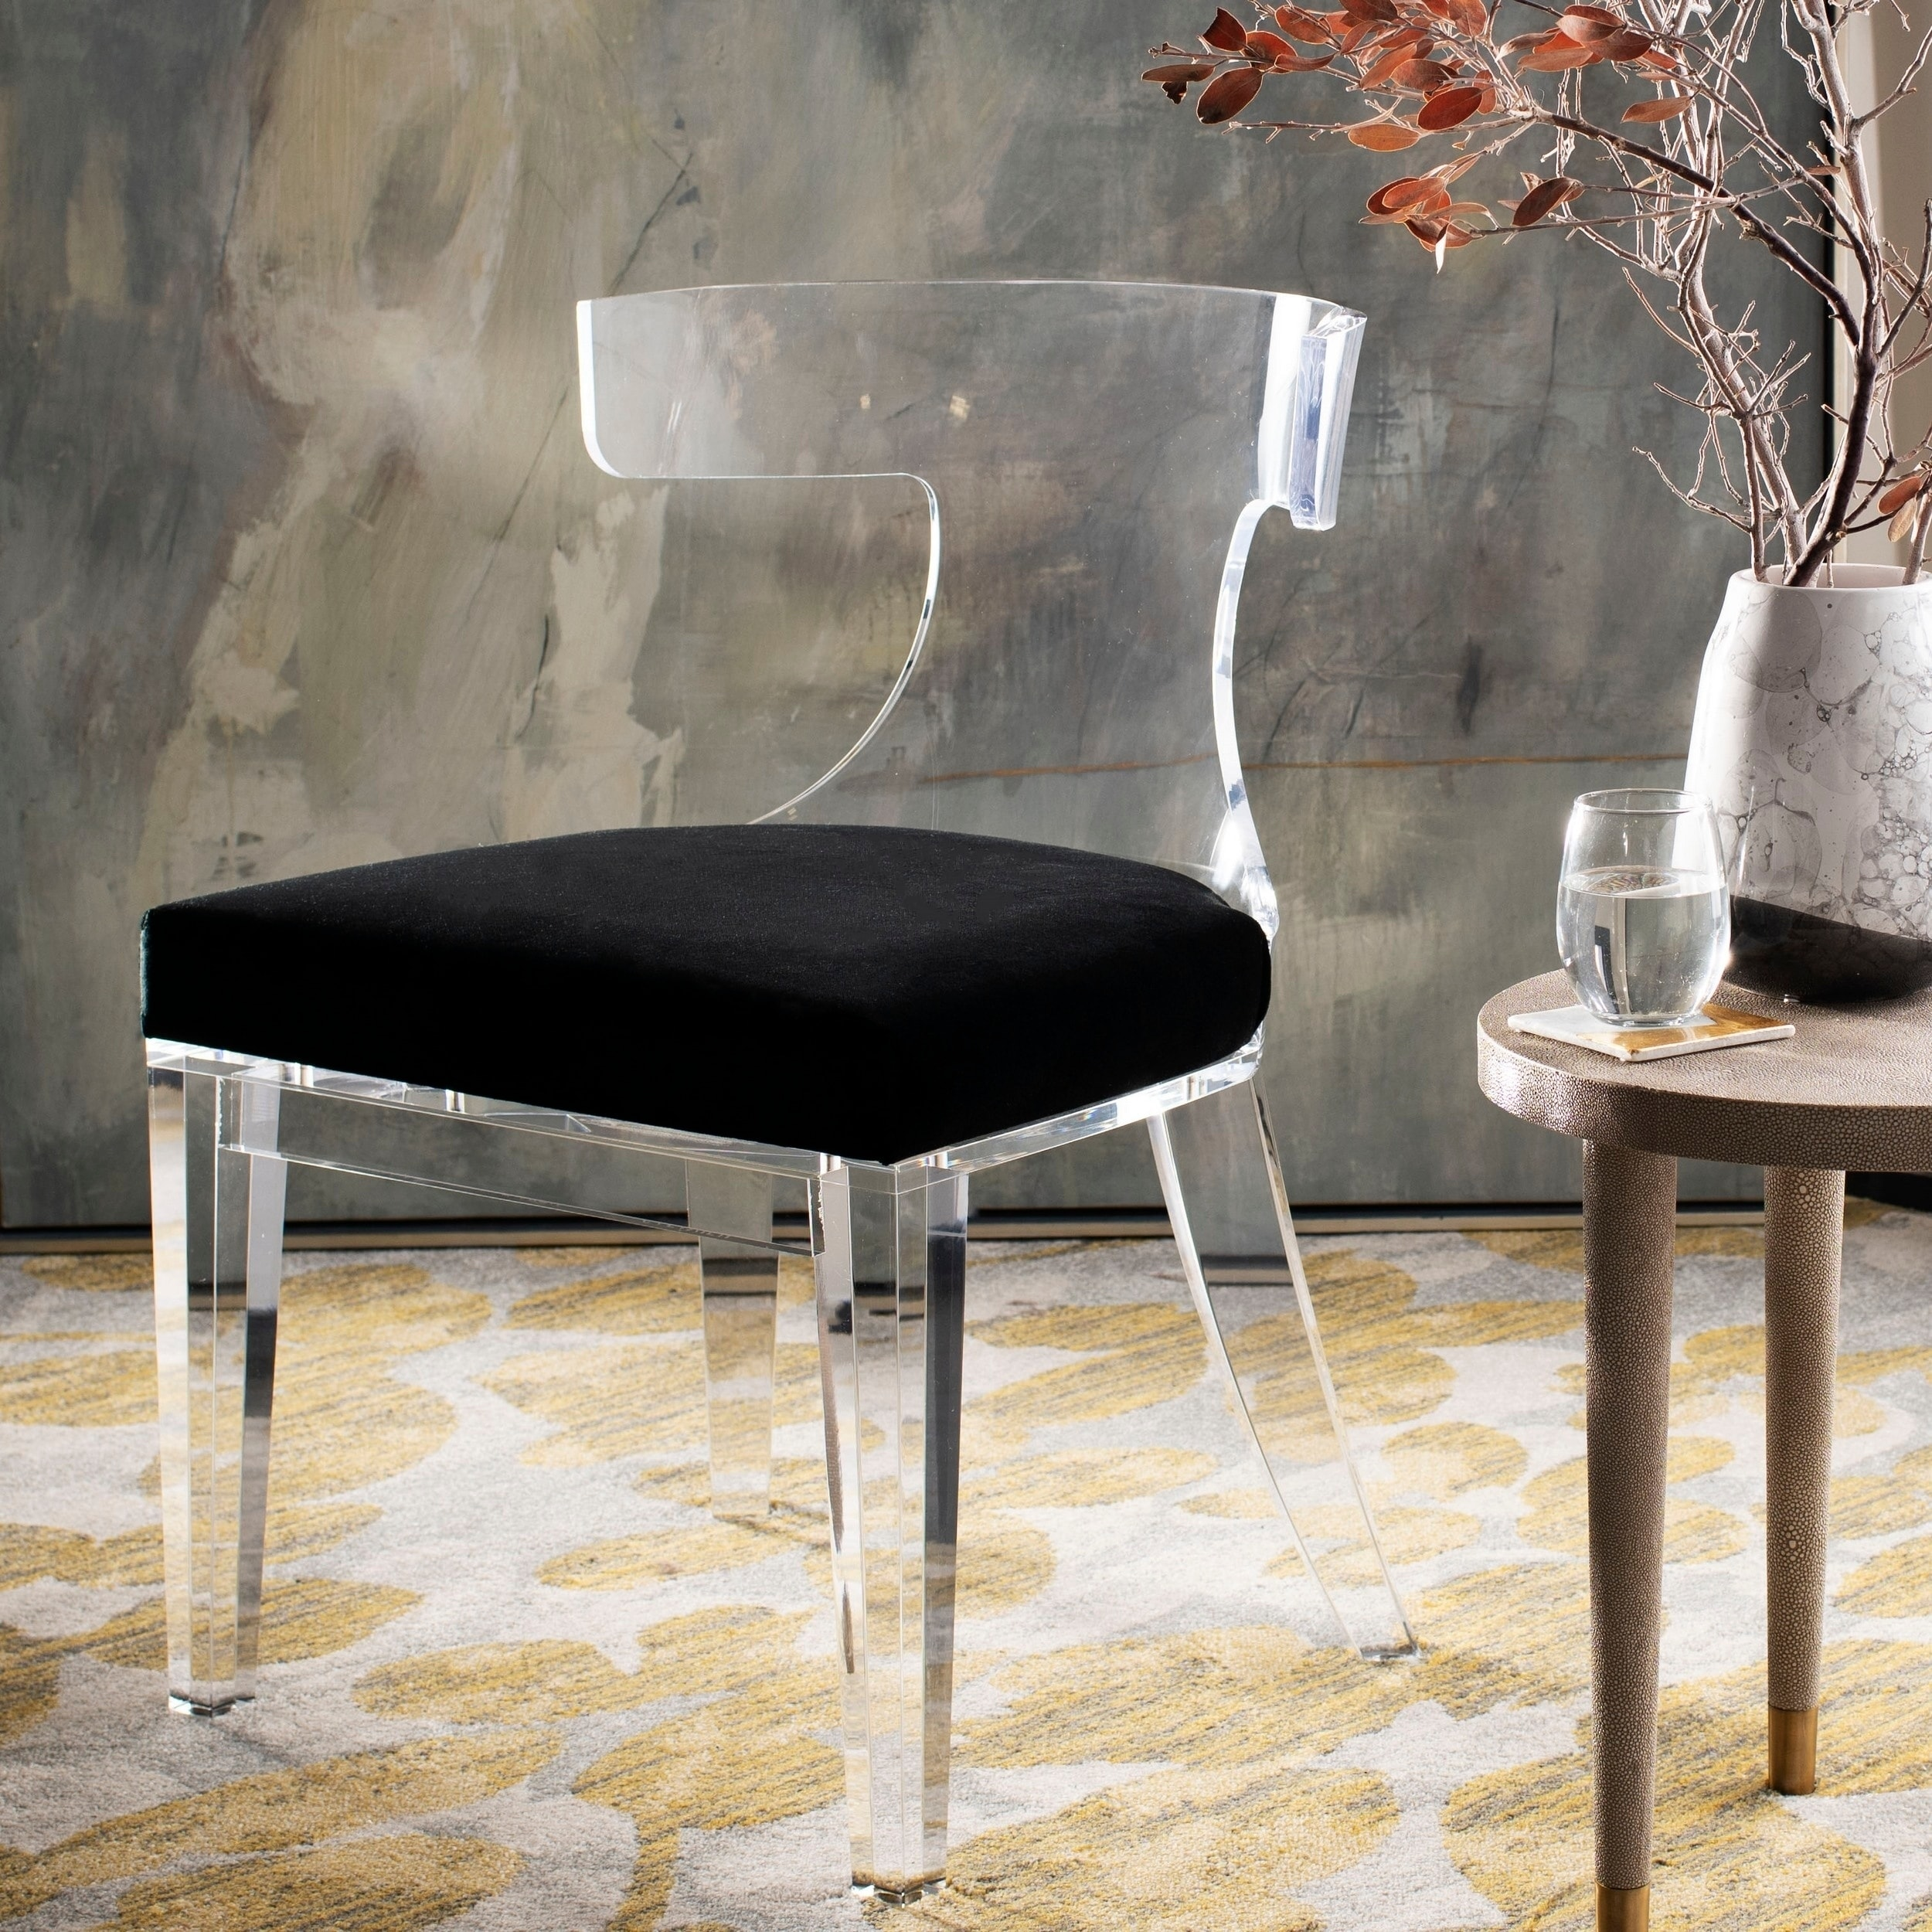 Details About Safavieh Couture Rhys Lucite Dining Chair Clear Black 18 5 In W X 21